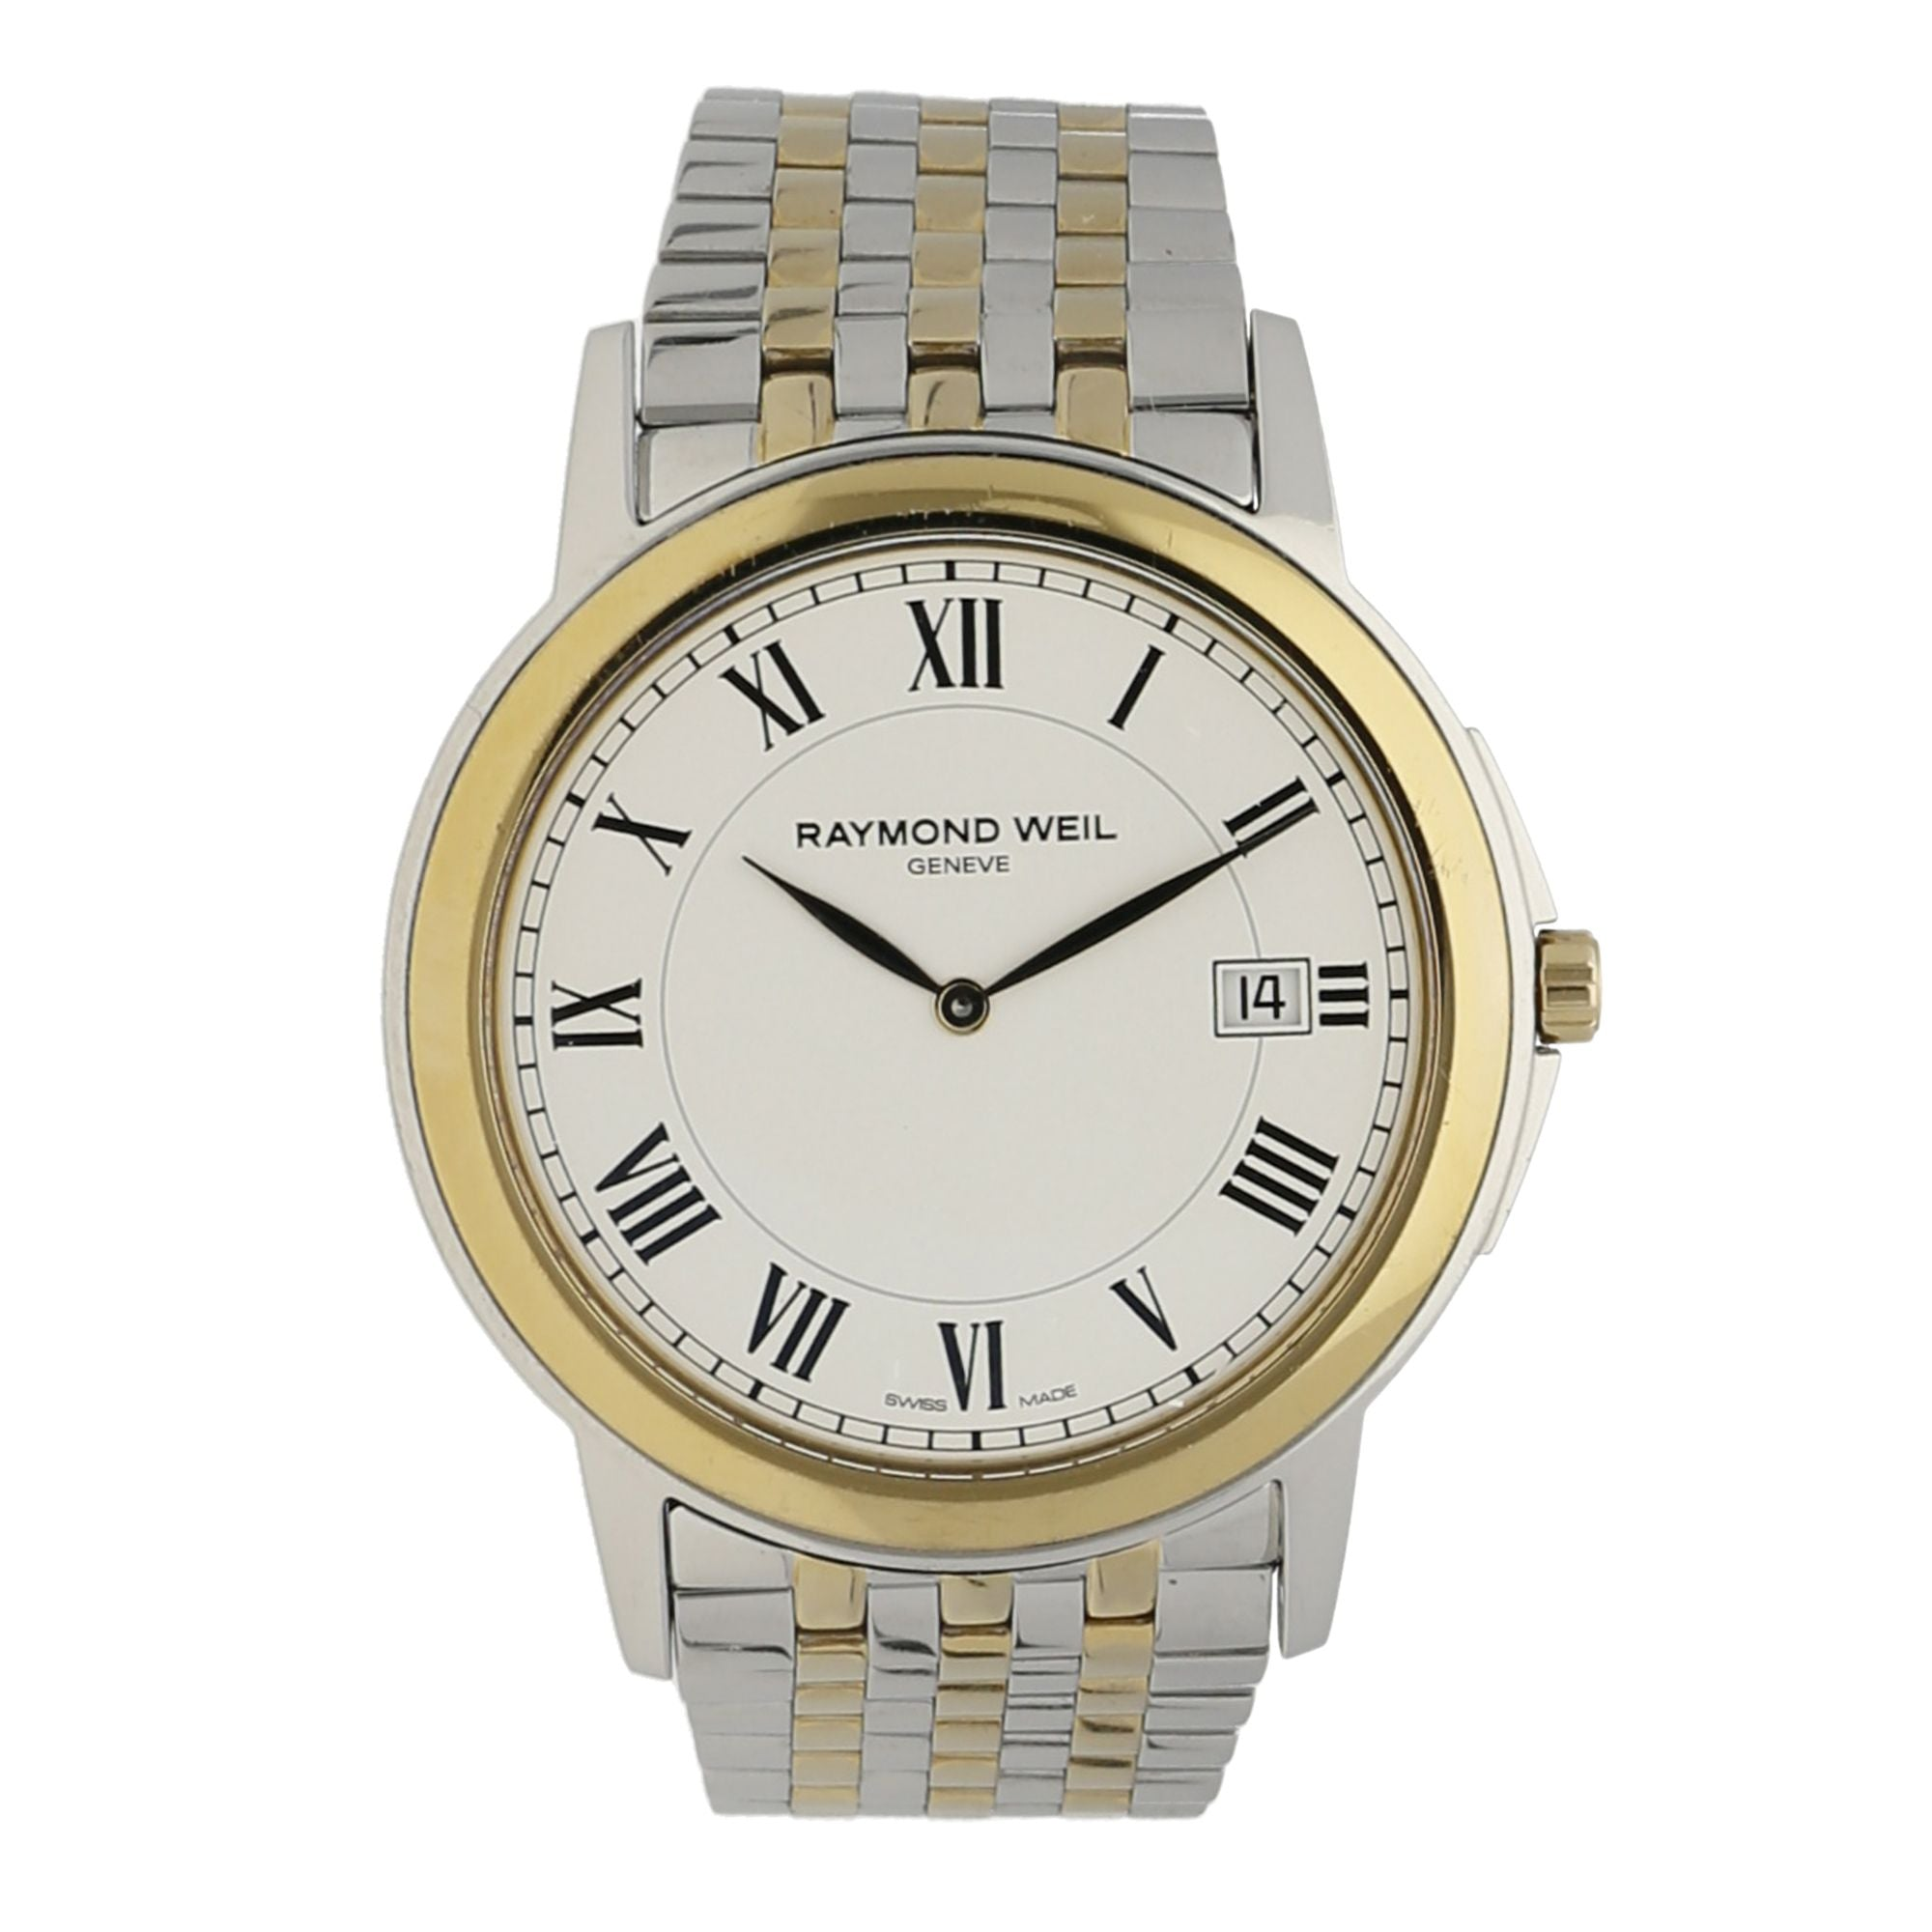 Raymond Weil Tradition 5466 Bi-Colour & White Quartz 39mm Mens Watch